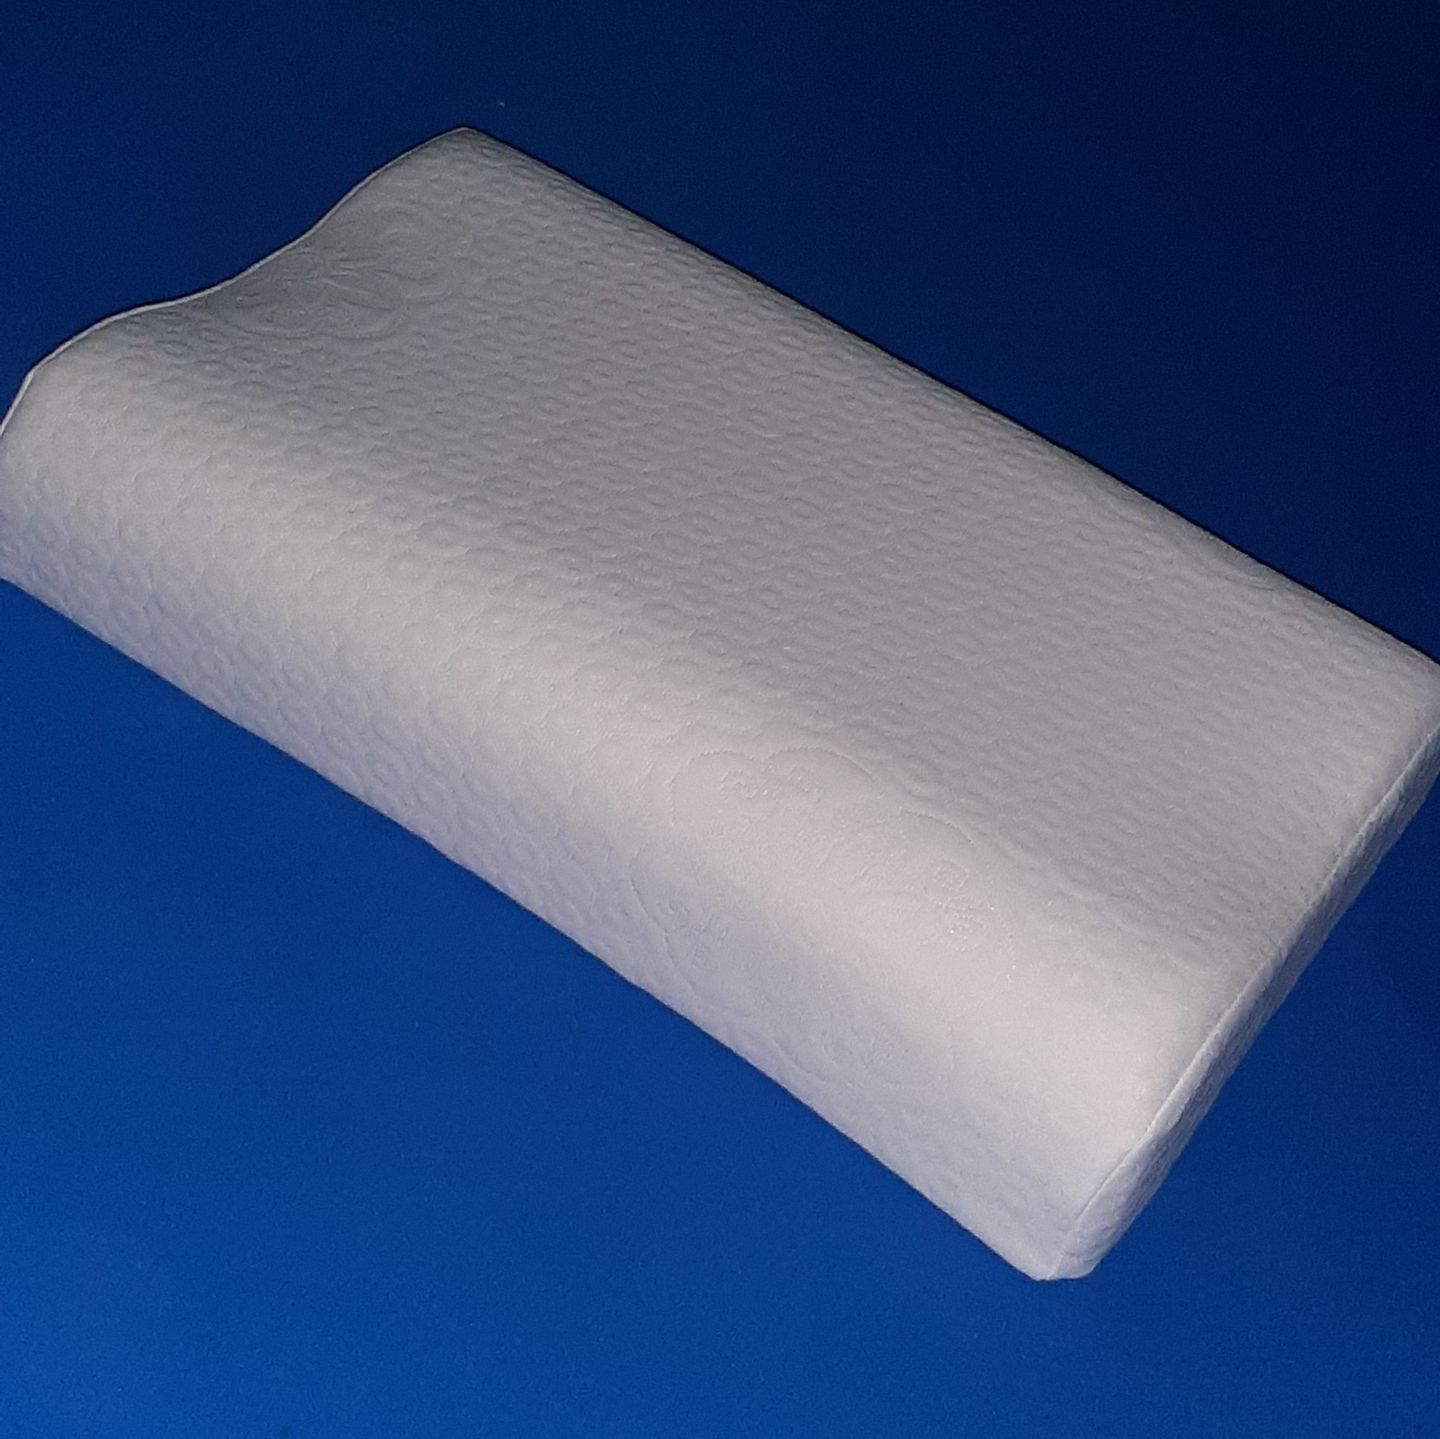 Angelica F. review of Cervical Pillow PRO